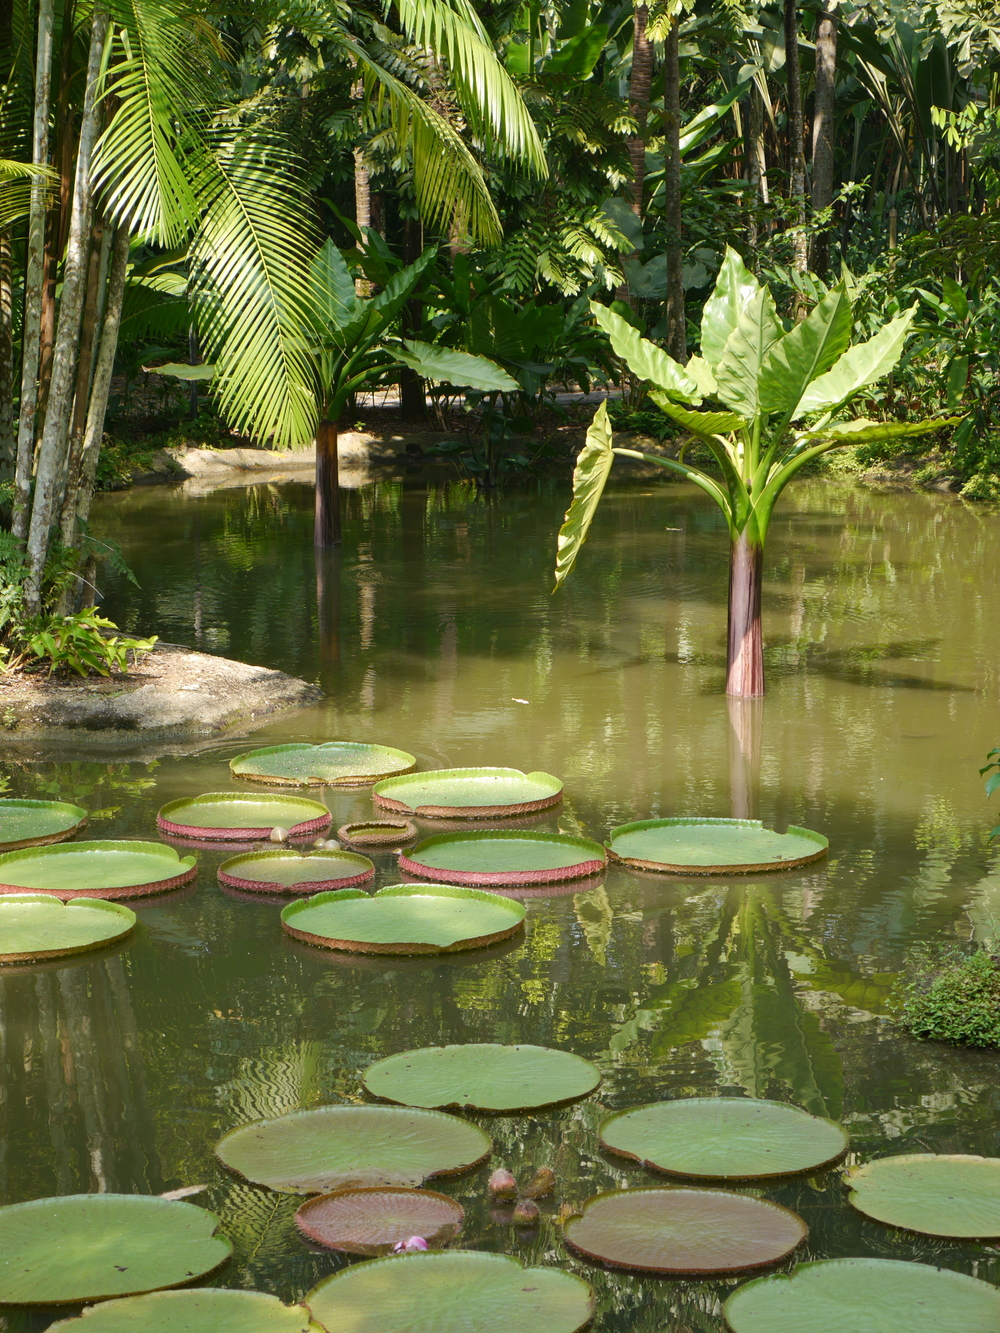 Huge lily pads and a submerged palm.